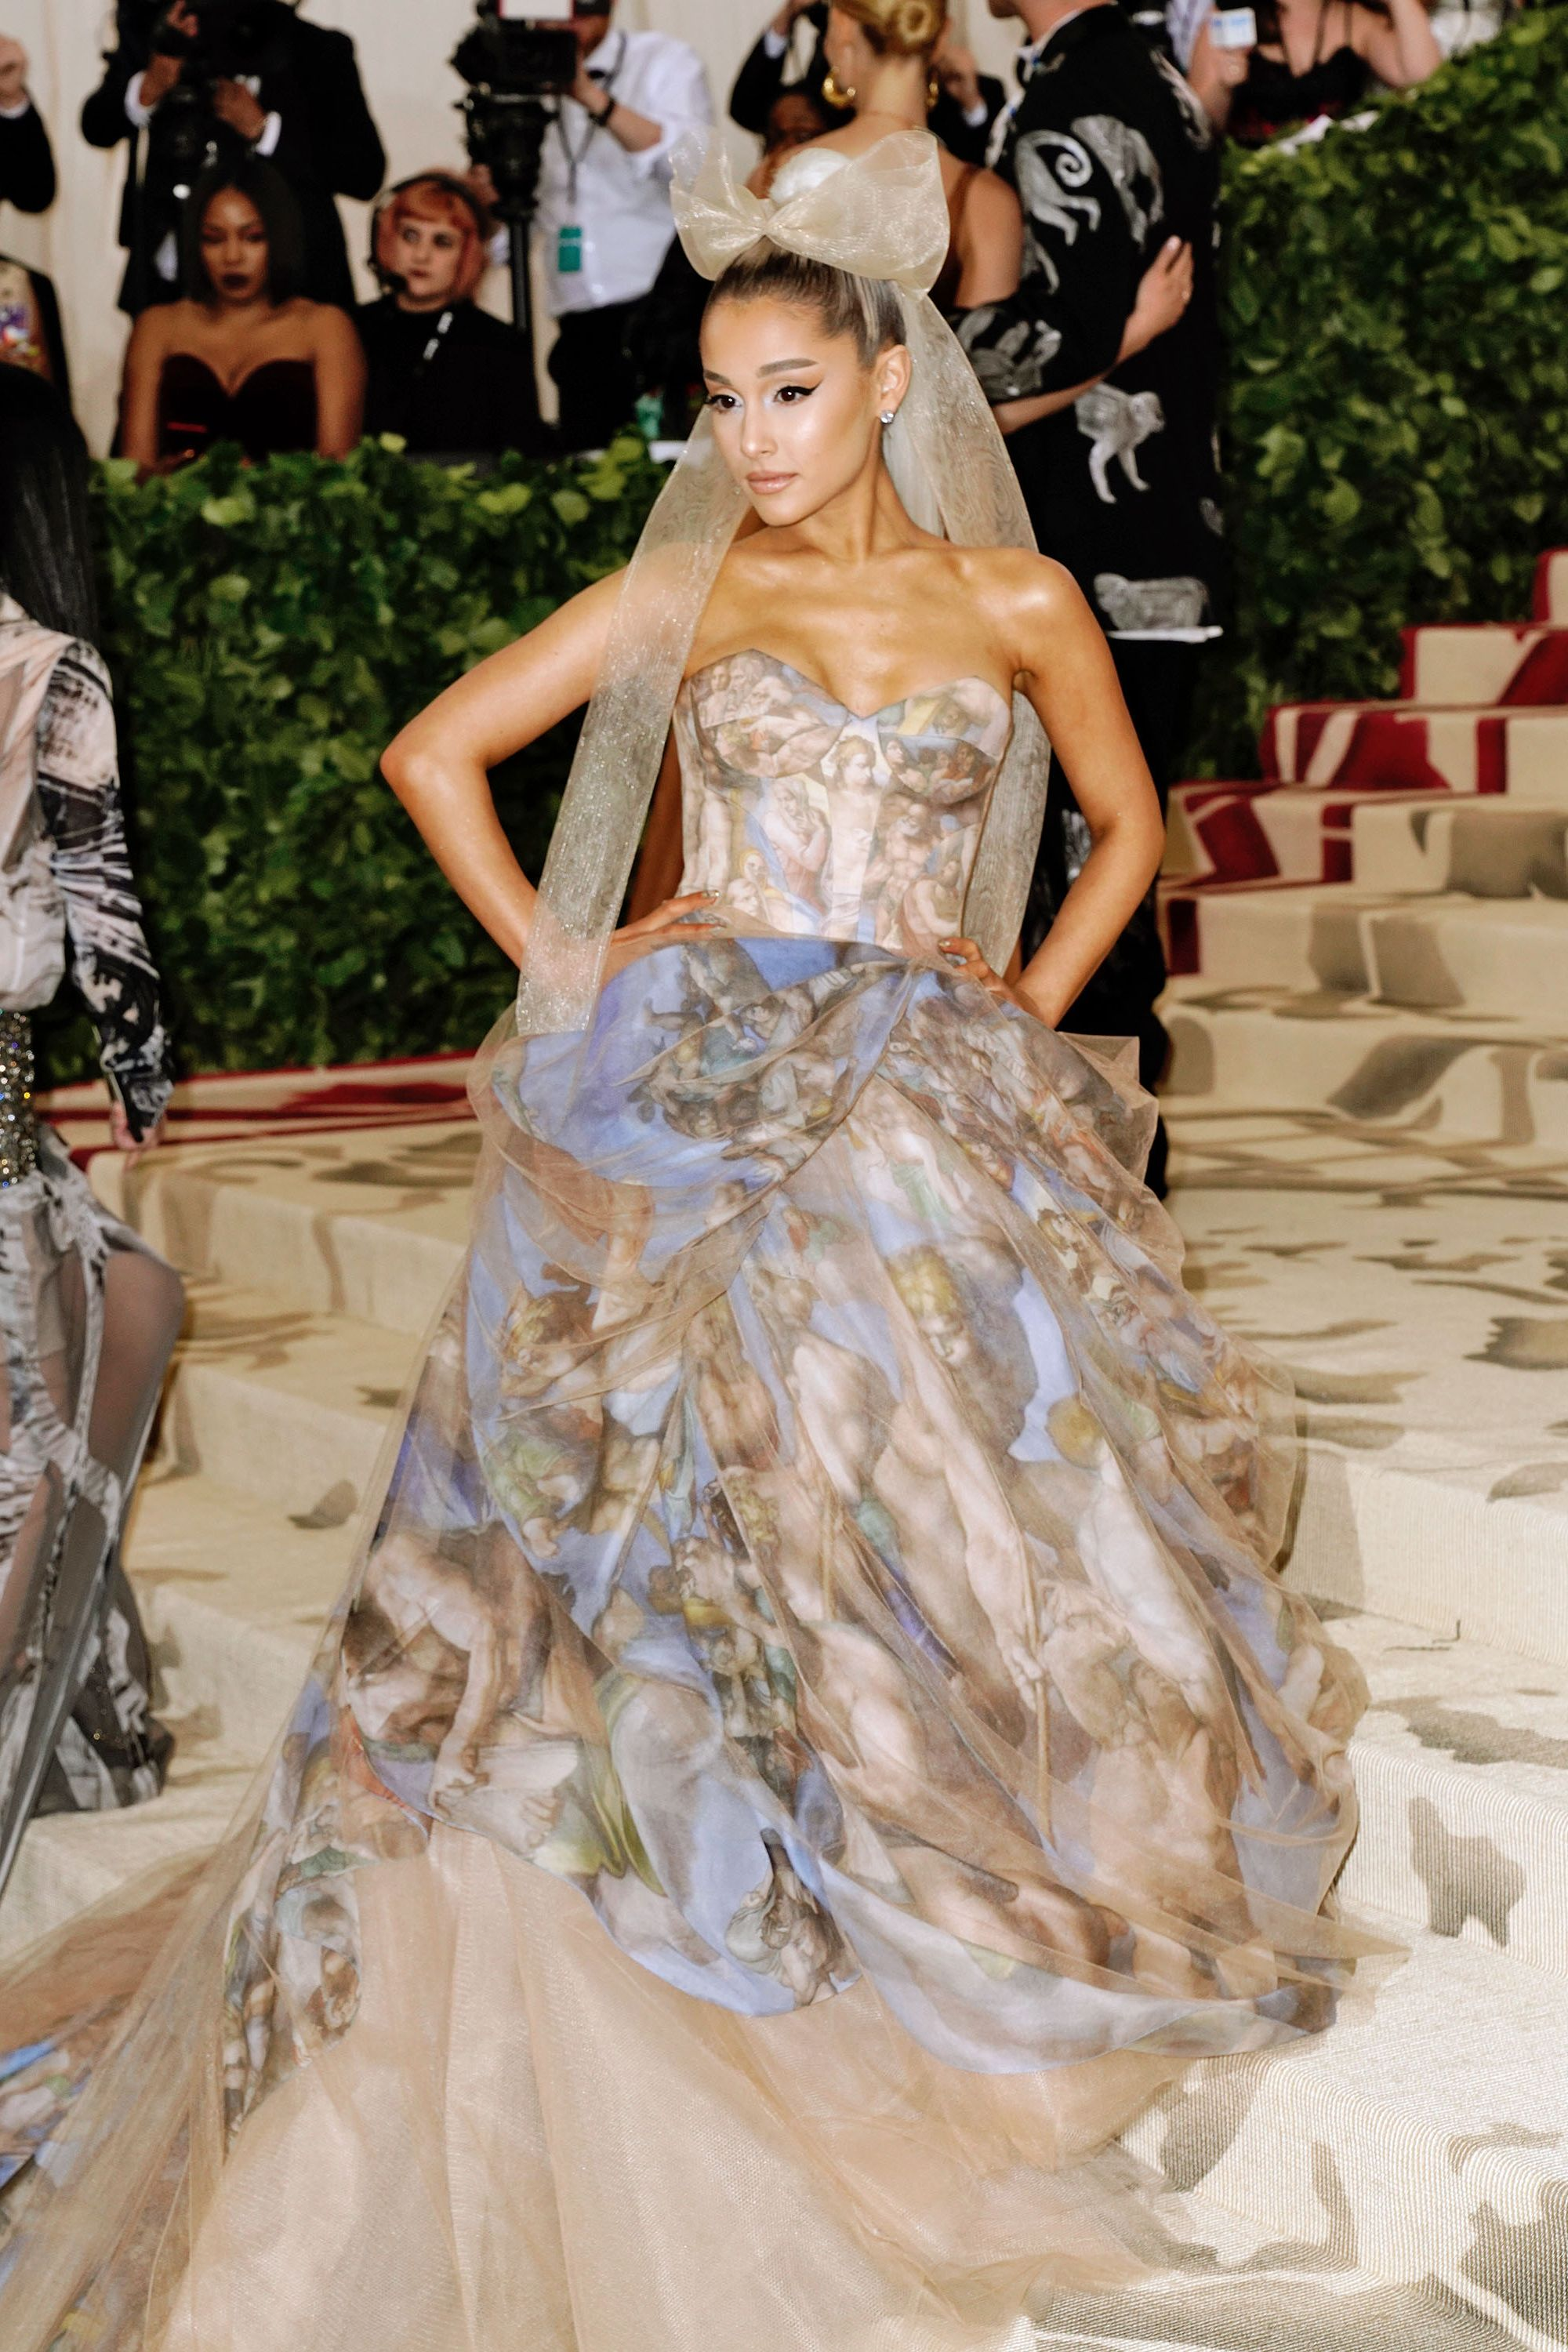 """Ariana Grande Grande made her Met Gala debut last year, playing into the """"Heavenly Bodies,"""" theme by donning a gorgeous Vera Wang gown influenced by Michelangelo's The Last Judgment. The singer is scheduled to perform tonight at the Staples Center in downtown Los Angeles for her Sweetener tour, and can't make this year's Gala."""